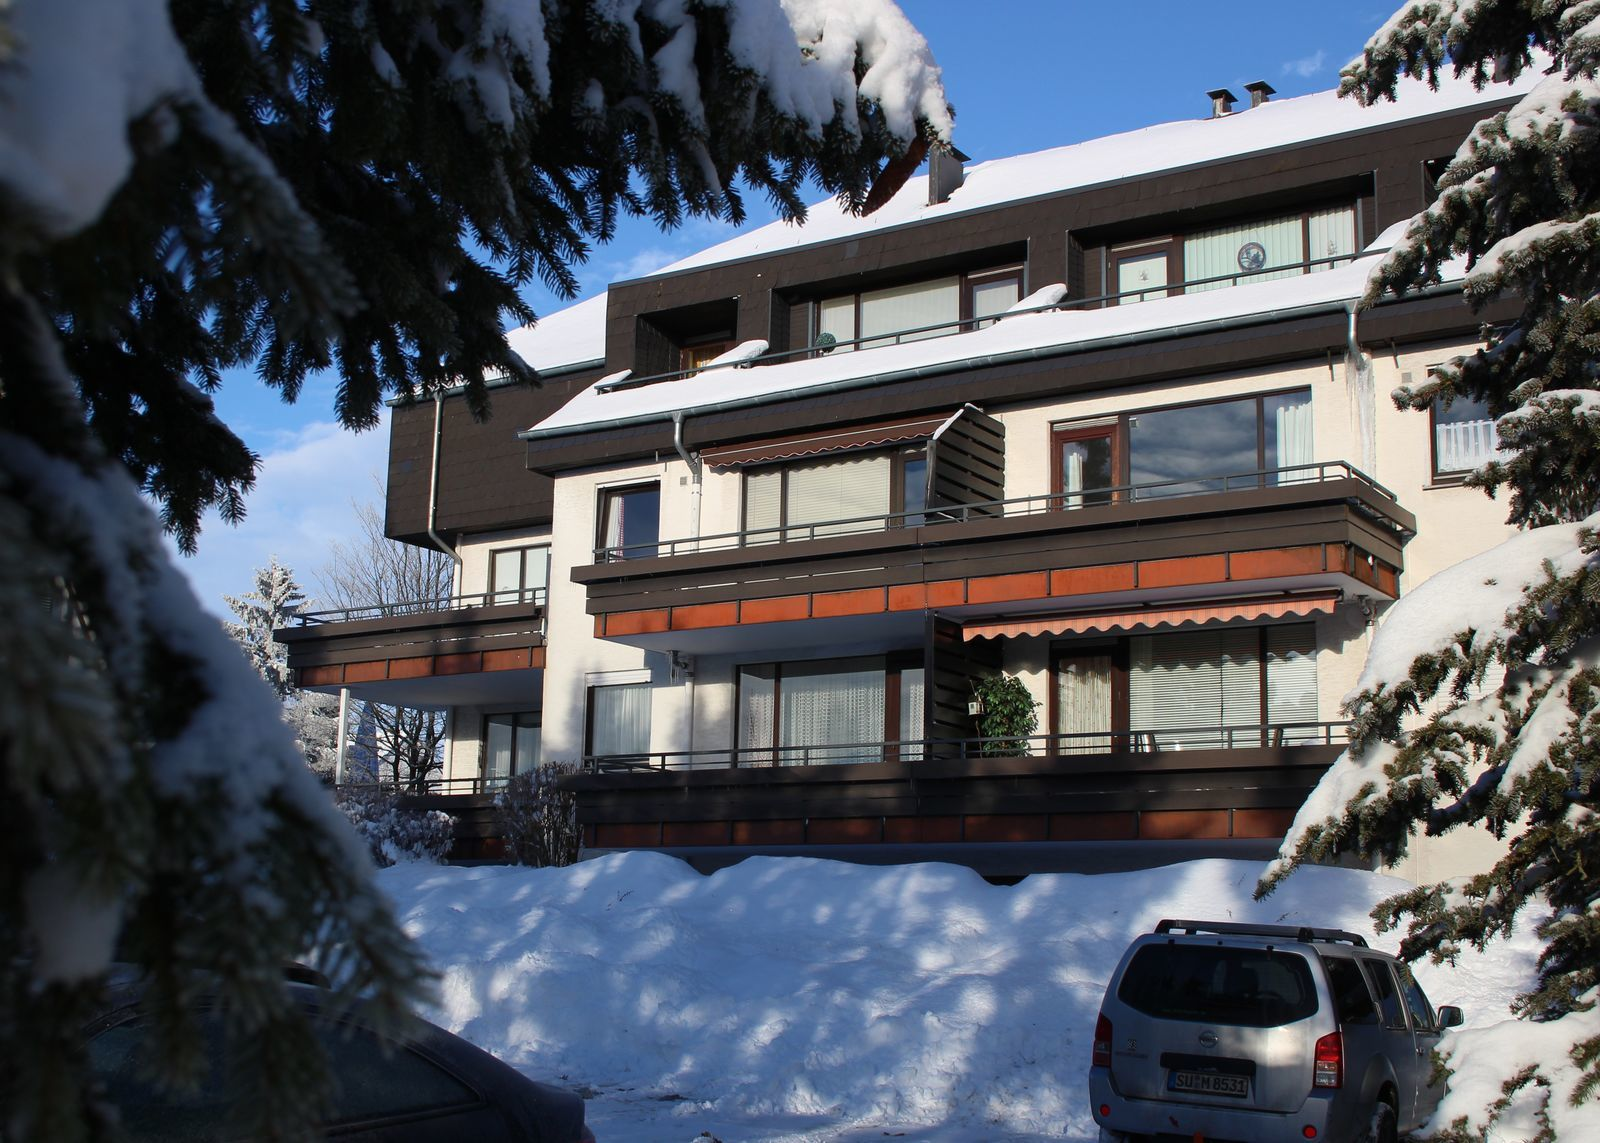 Apartment - Am Waltenberg 59-A | Winterberg